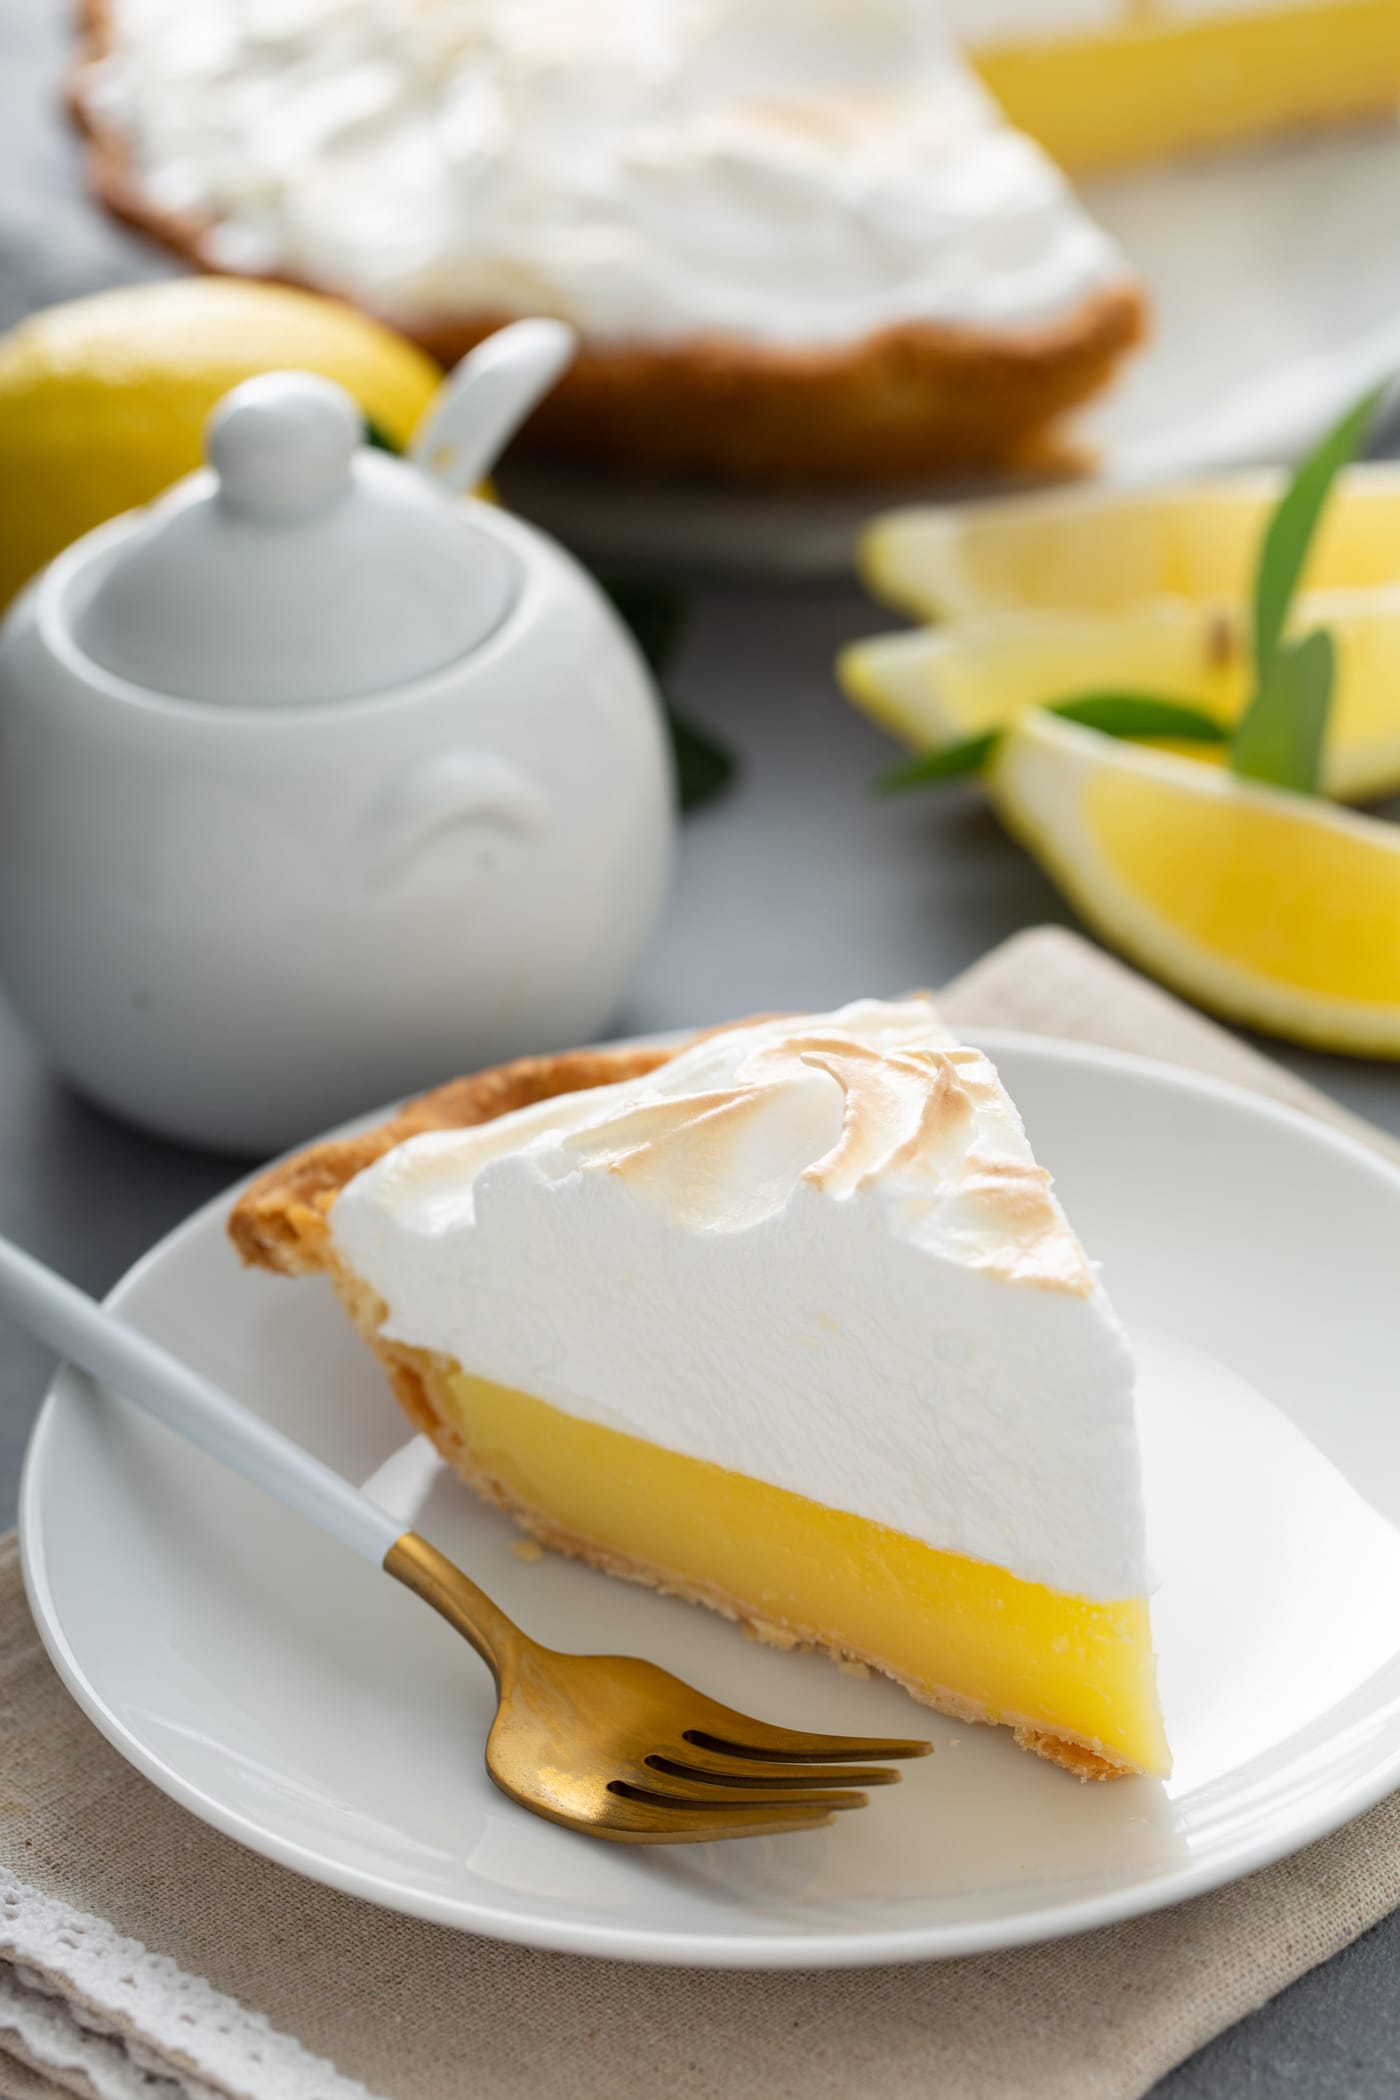 A picture of a slice of lemon meringue pie. The filling is bright yellow and the meringue on top is lightly toasted. There are lemon wedges and a sugar bowl in the background and a fork is on the plate next to the slice of pie.